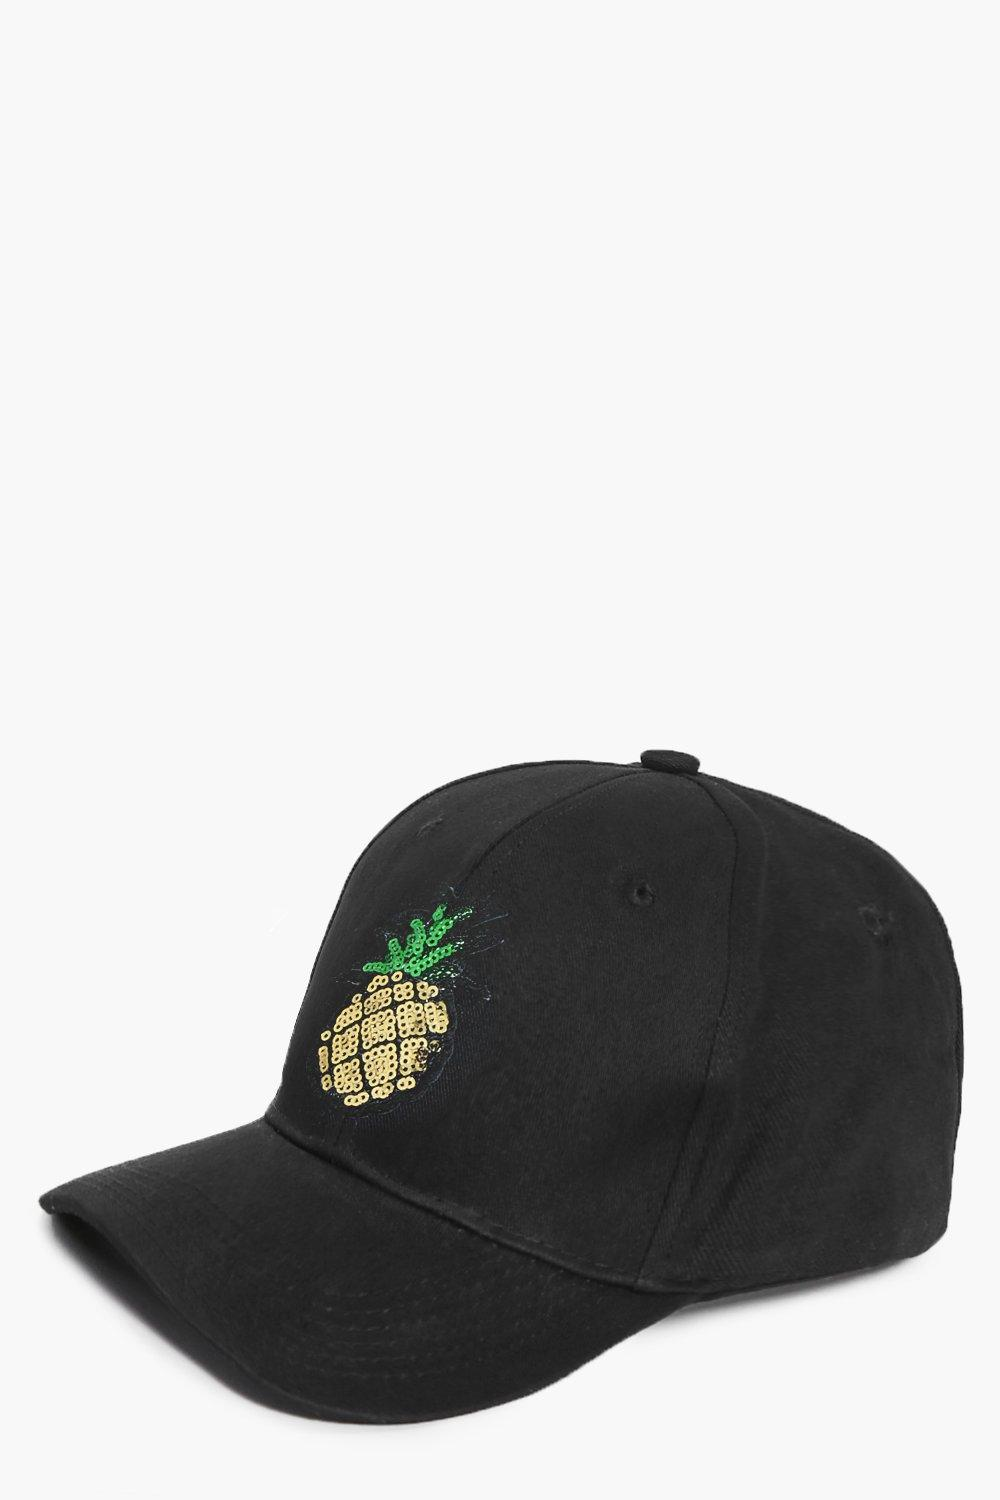 Sequin Pineapple Baseball Cap - black - Madison Se